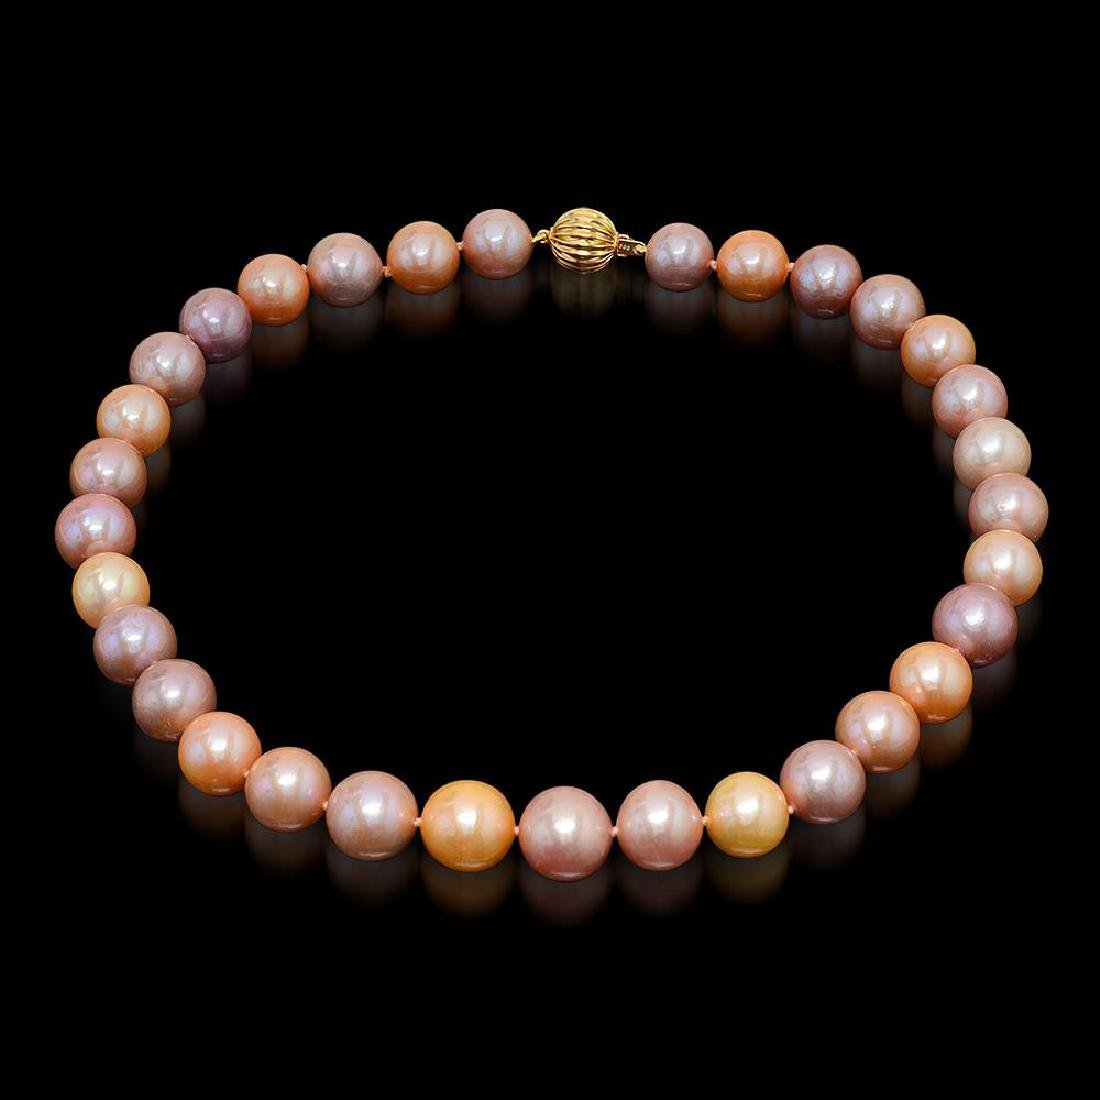 12-15mm Natural South Sea Pearl Necklace - 4